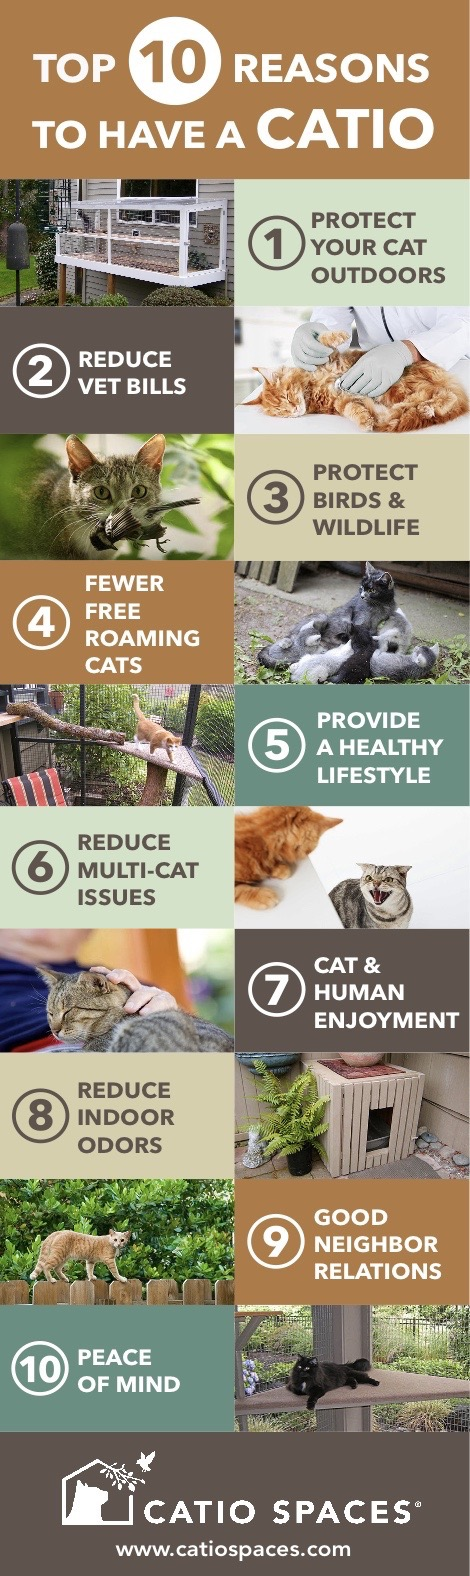 Catio Spaces Catio Top10 Benefits